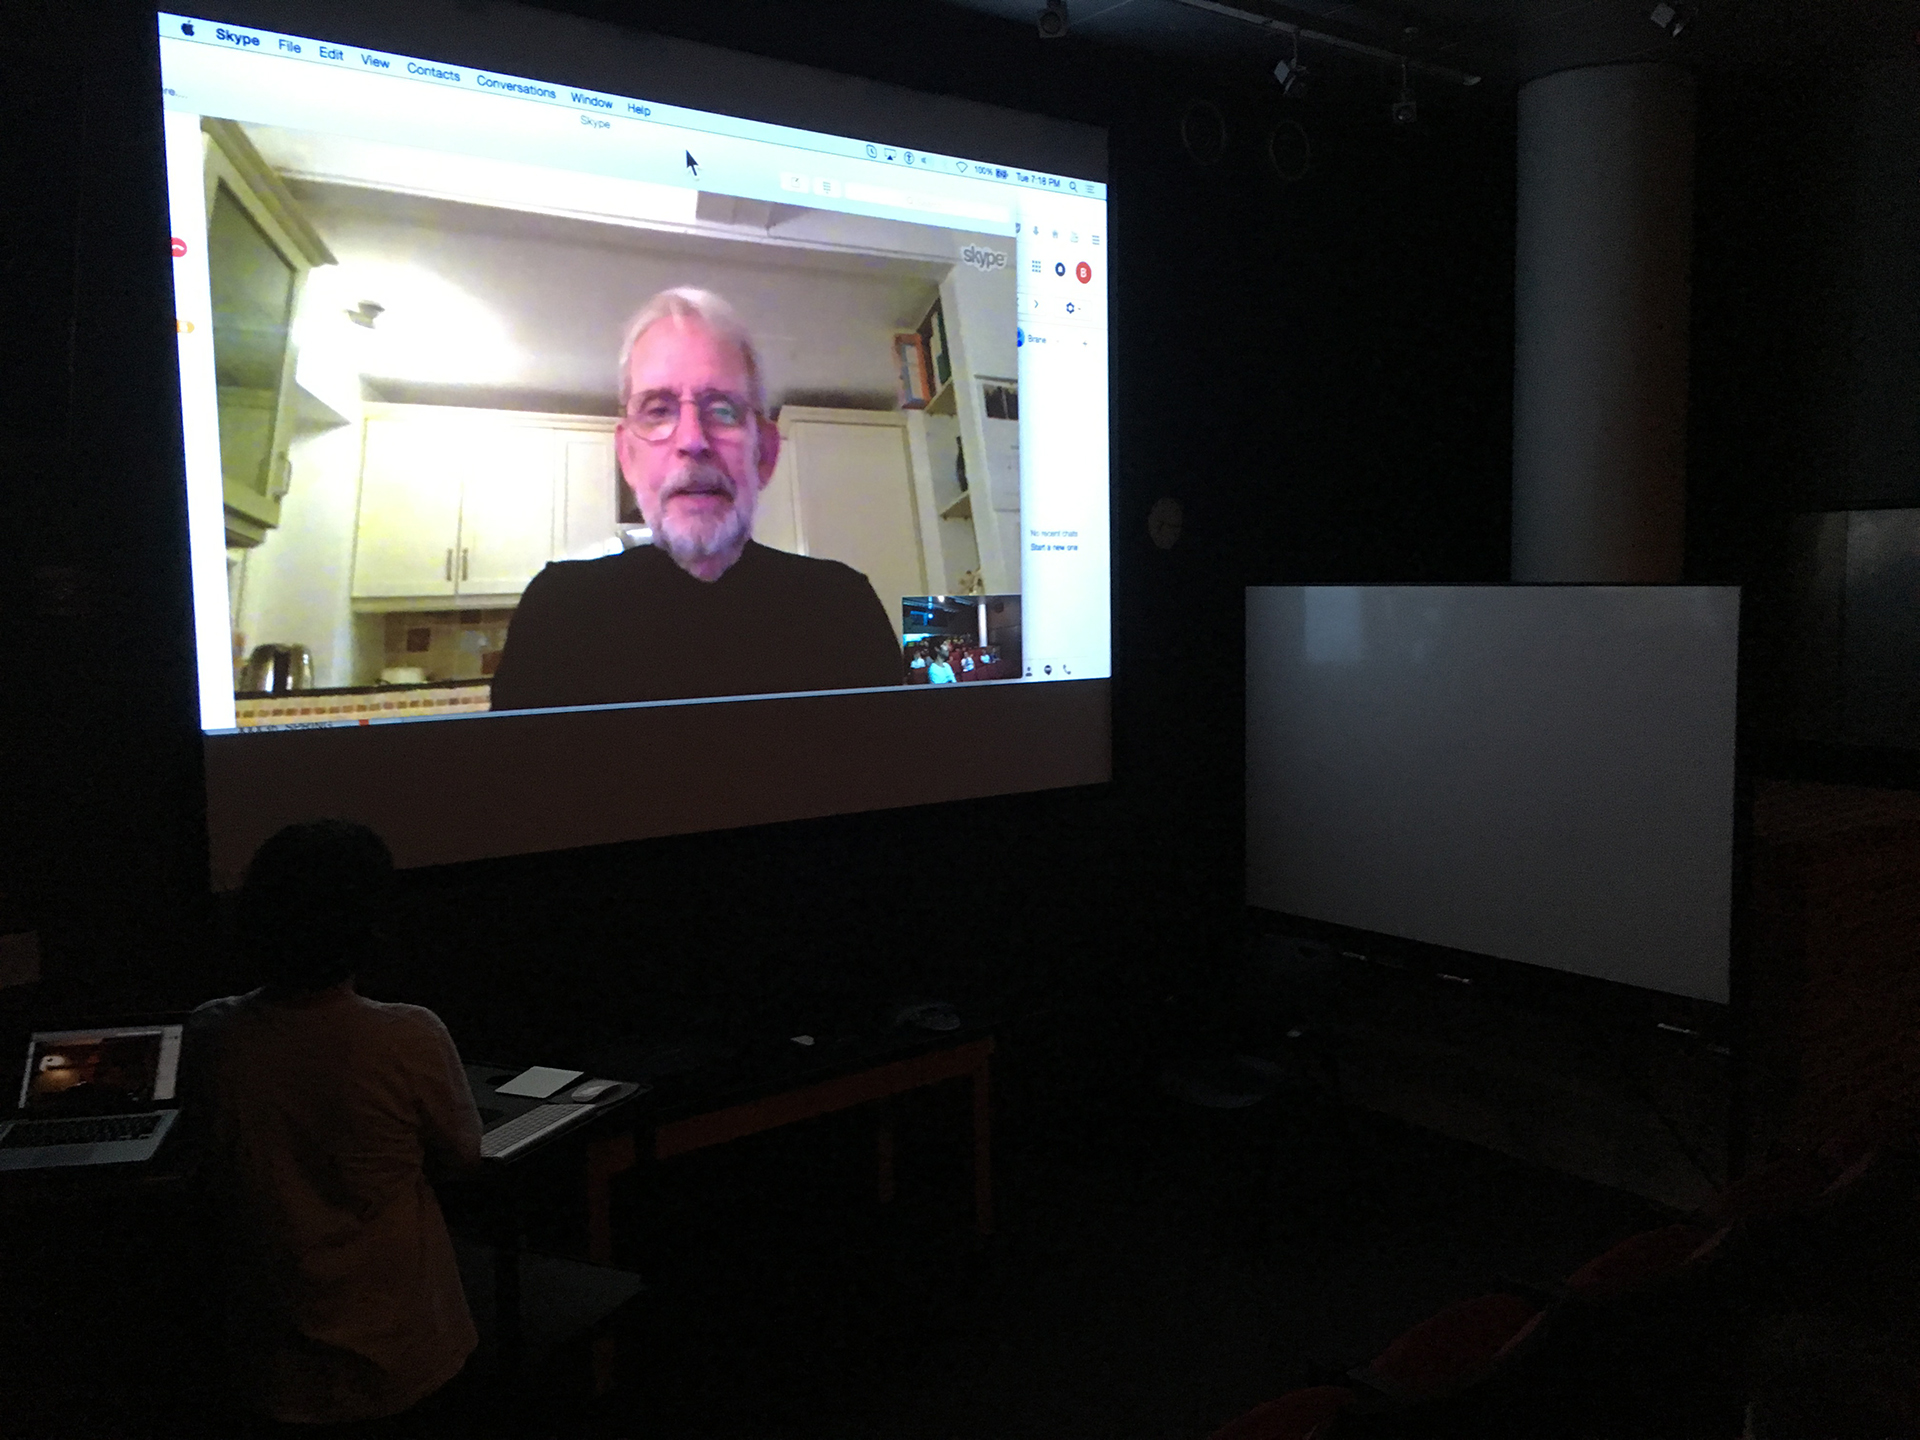 Walter Murch Discusses New Film COUP 53 with Open Arts Students